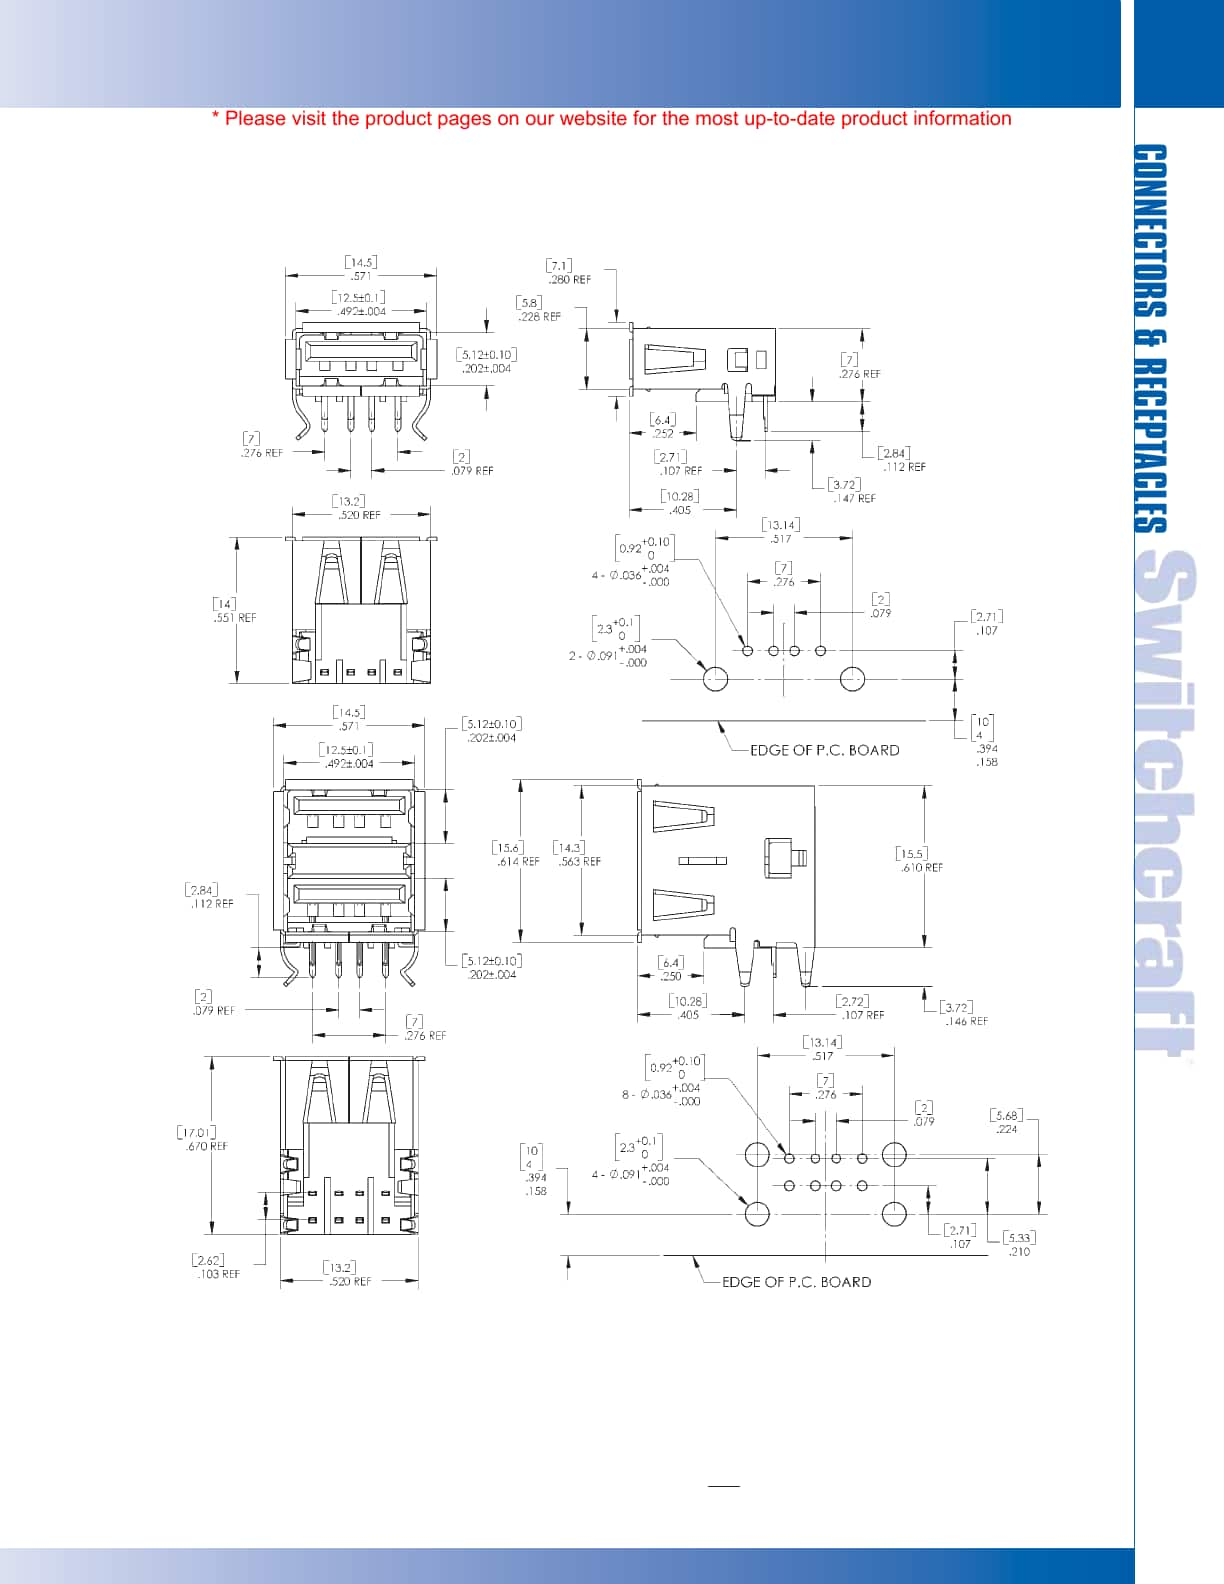 Din Plugs Receptacle Catalog Switchcraft Digikey To Build Usb Power Injector For External Hard Drives Circuit Diagram Inc 5555 N Elston Ave Chicago Il 60630